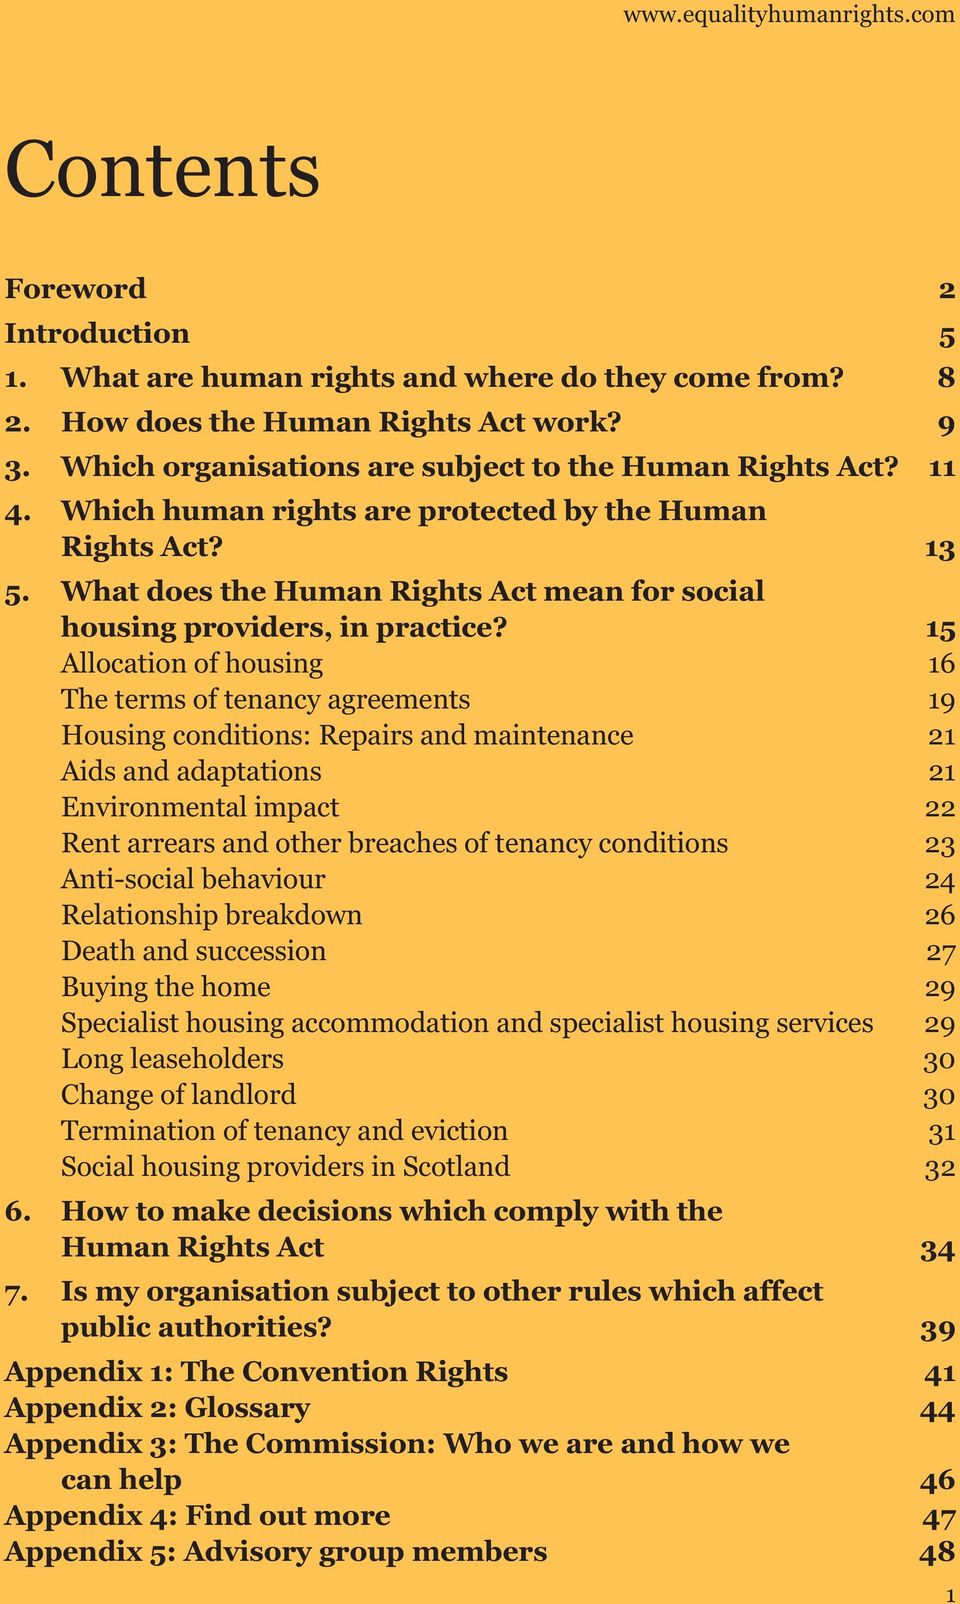 What does the Human Rights Act mean for social housing providers, in practice?